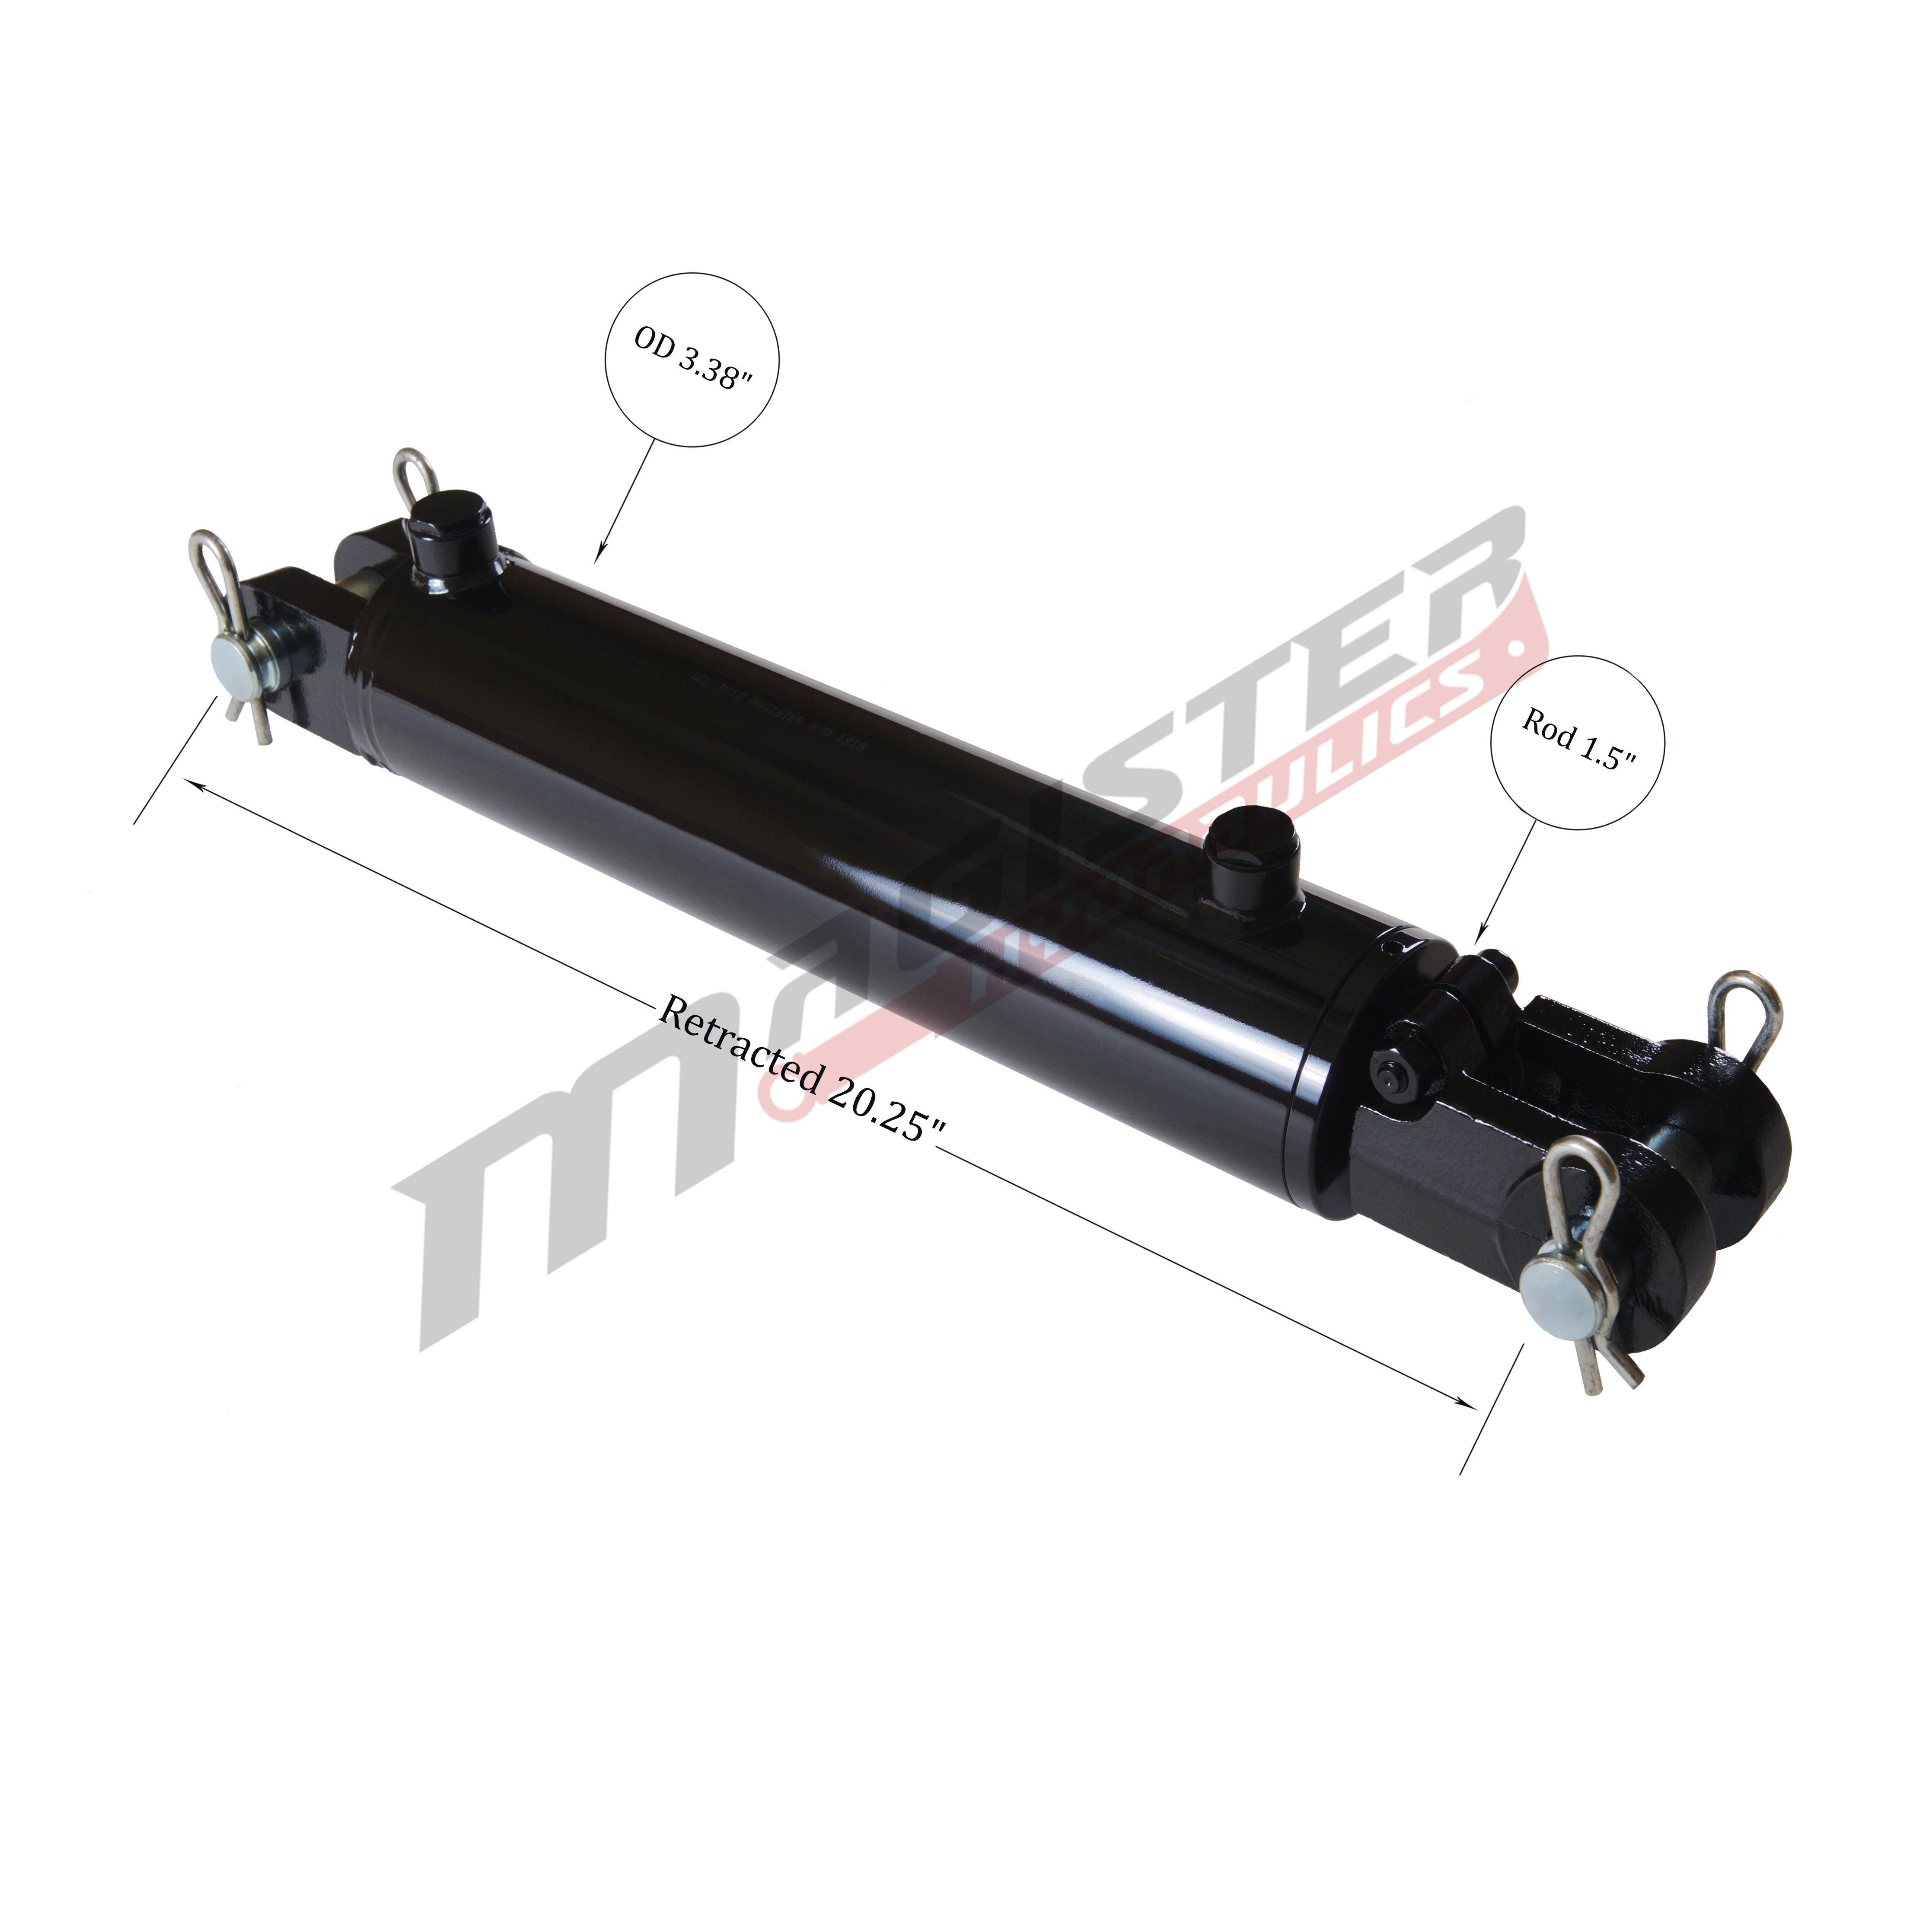 3 bore x 8 ASAE stroke hydraulic cylinder, welded clevis double acting cylinder | Magister Hydraulics